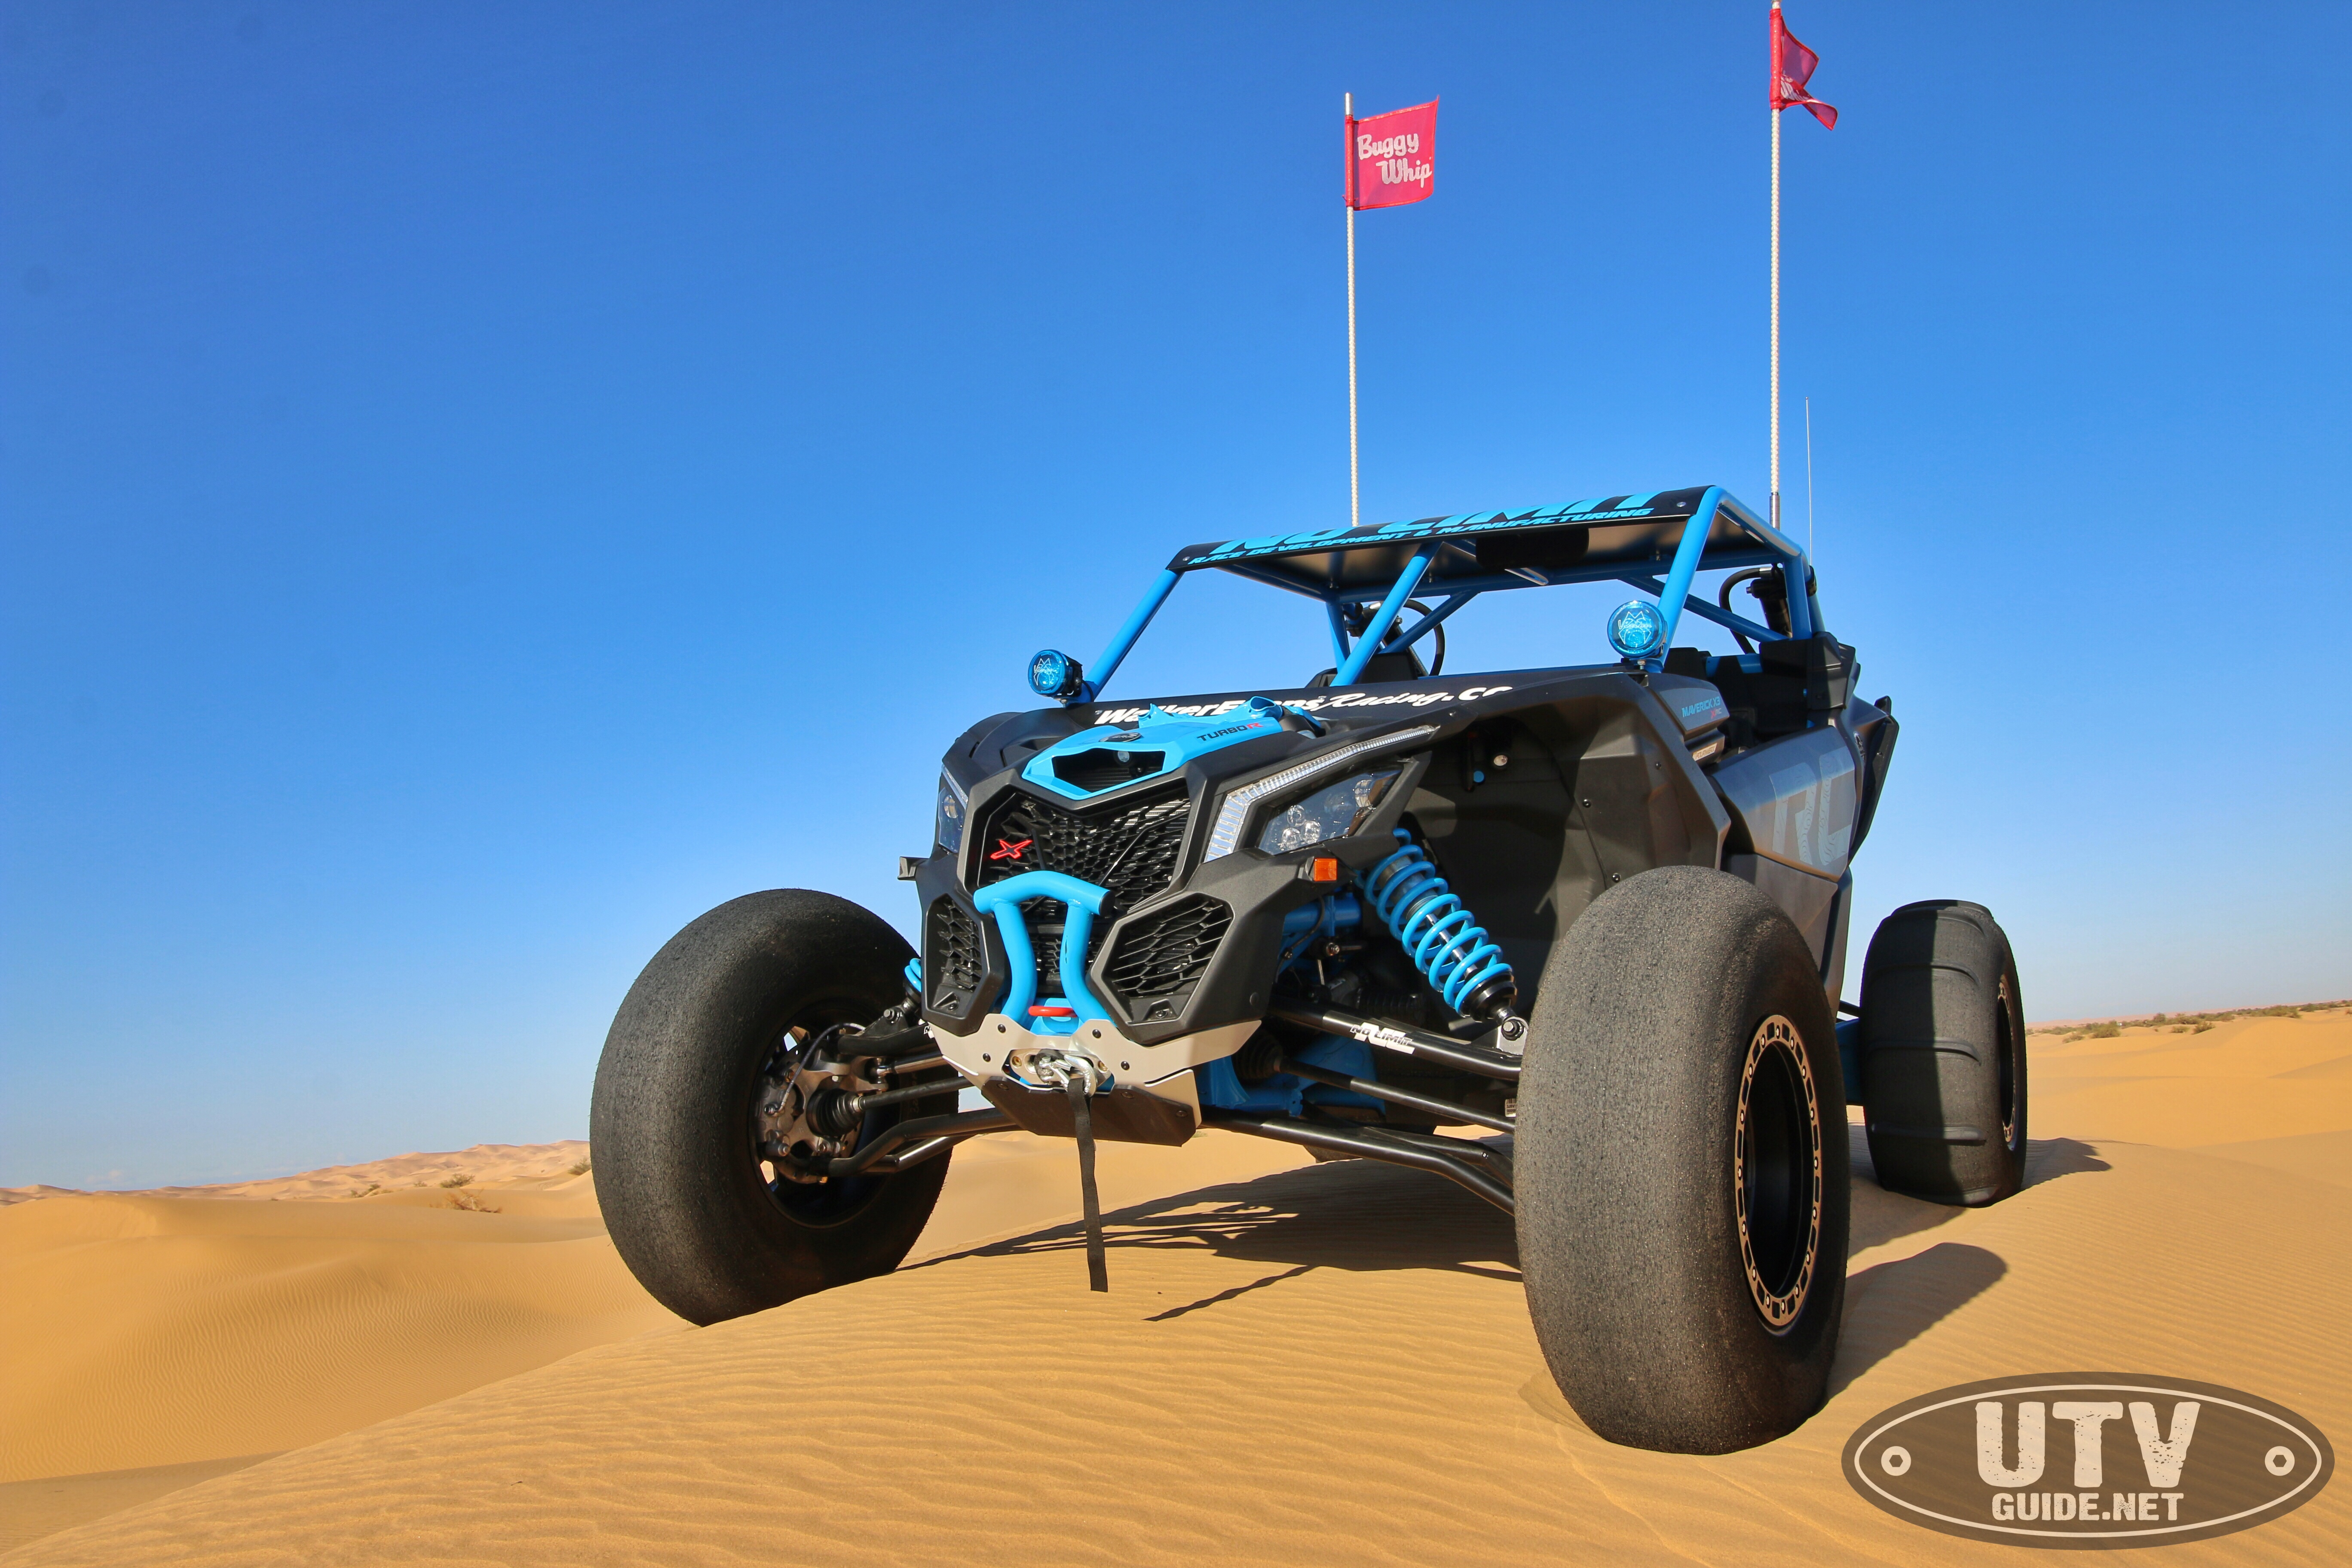 Best Rc Car For Sand Dunes >> Can-Am Maverick X3 X RC Dune Review and Phase 1 Build ...